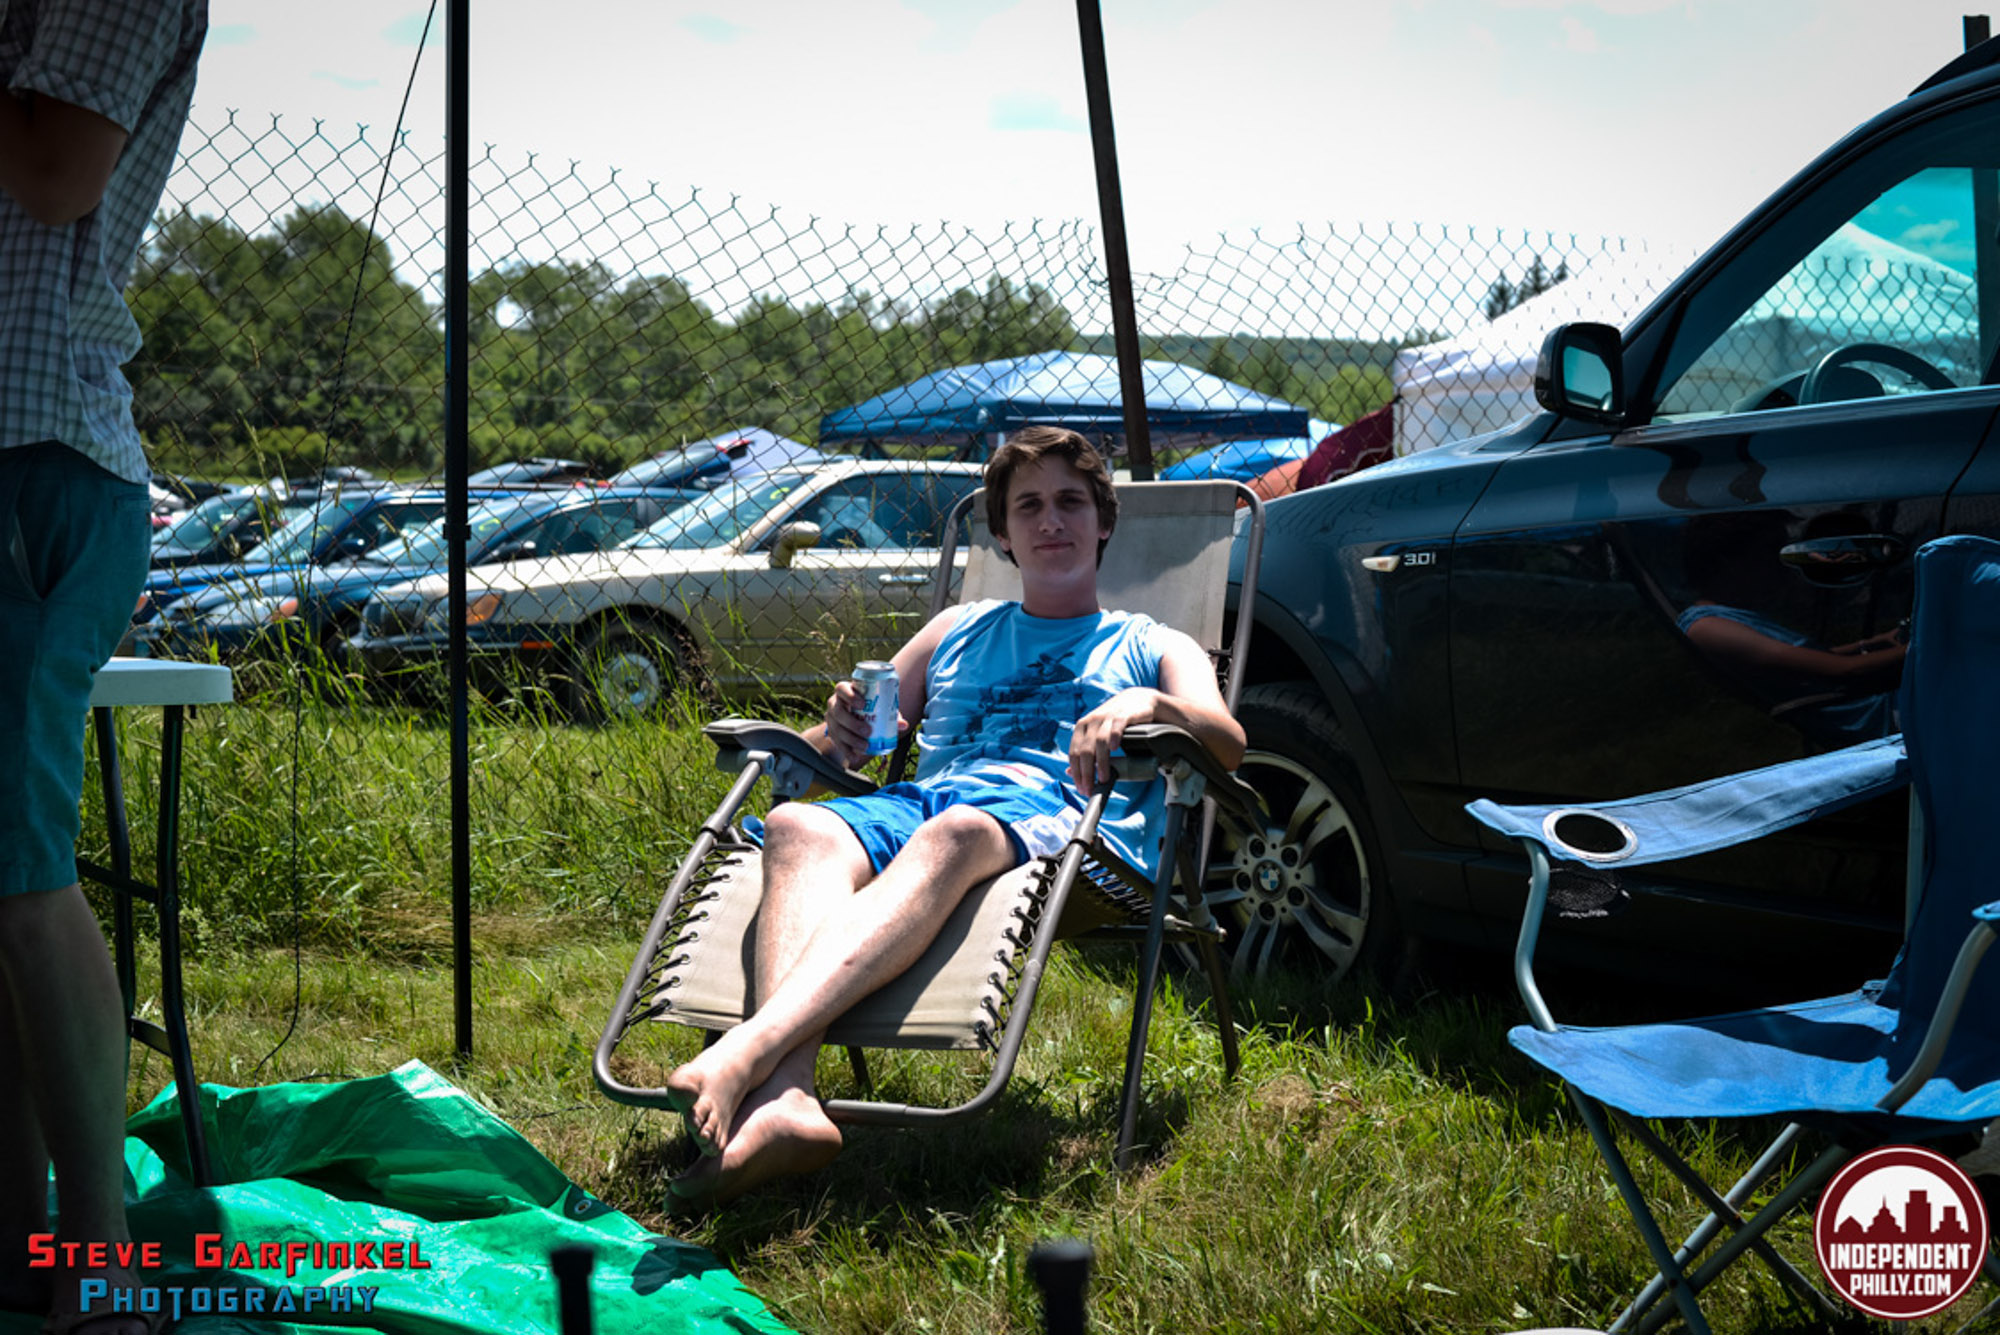 Camp_Bisco-5